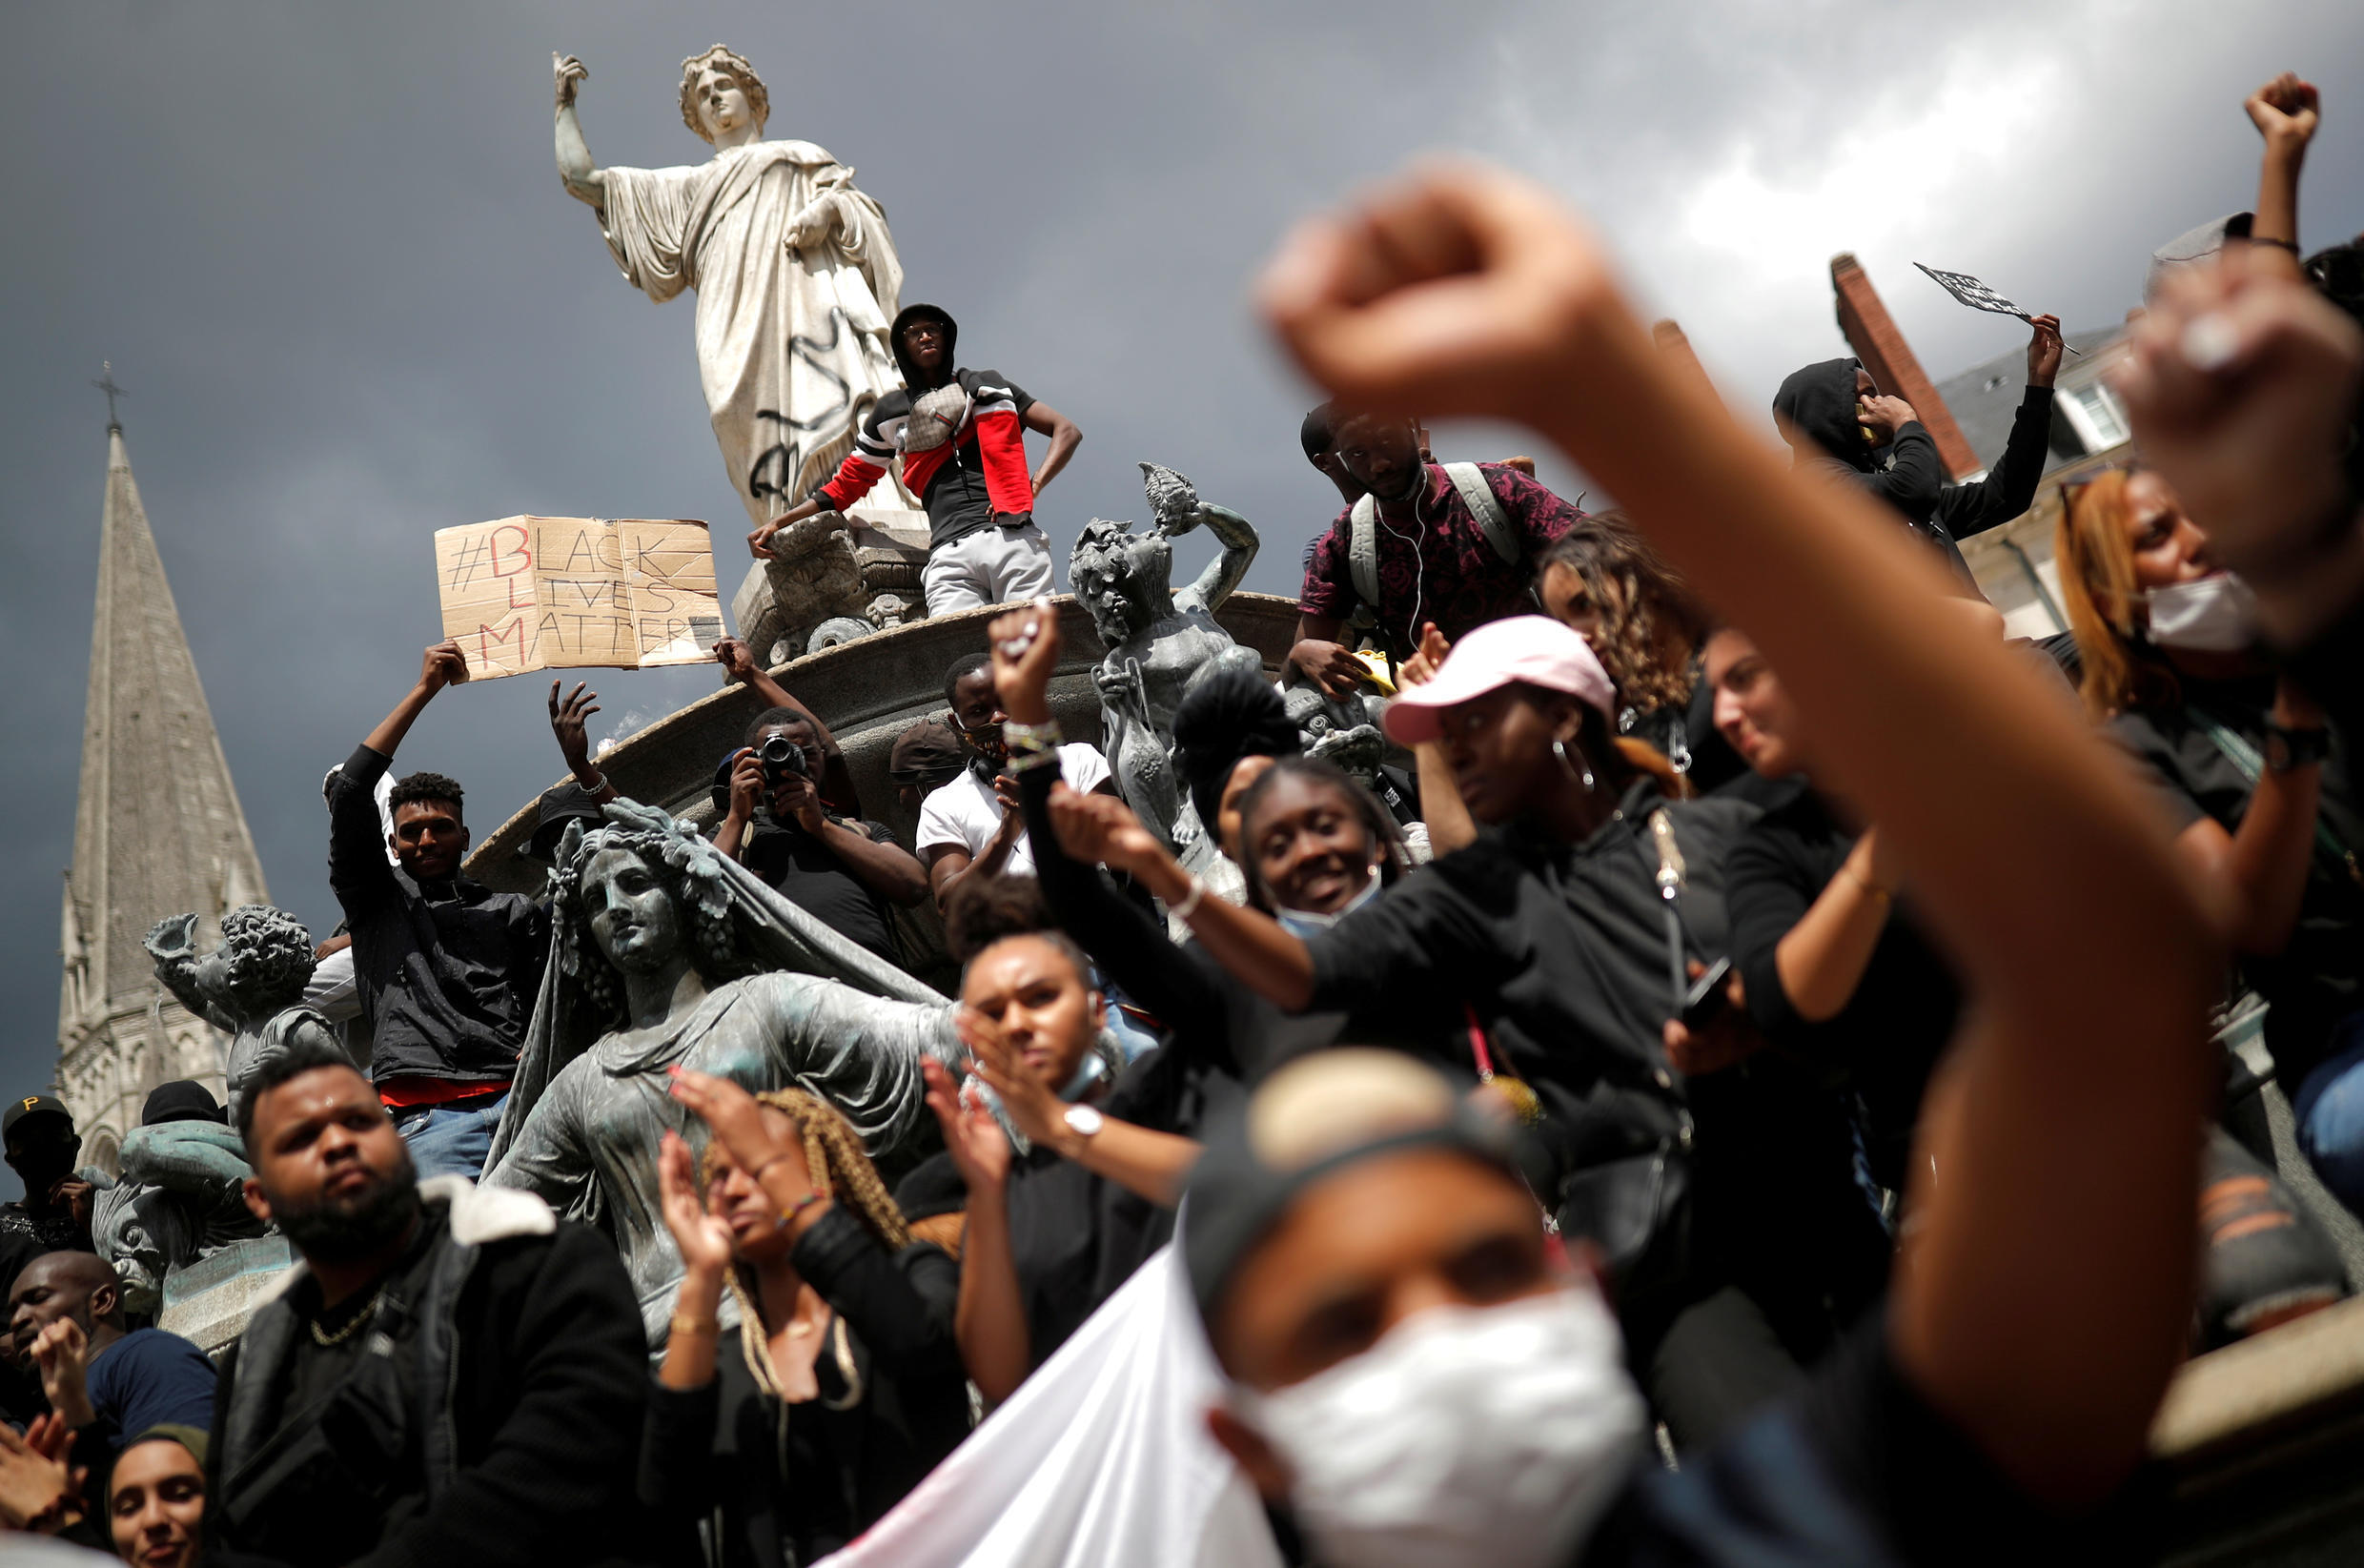 Protesters attend a rally against racism and police brutality in Nantes, western France, on June 8, 2020.